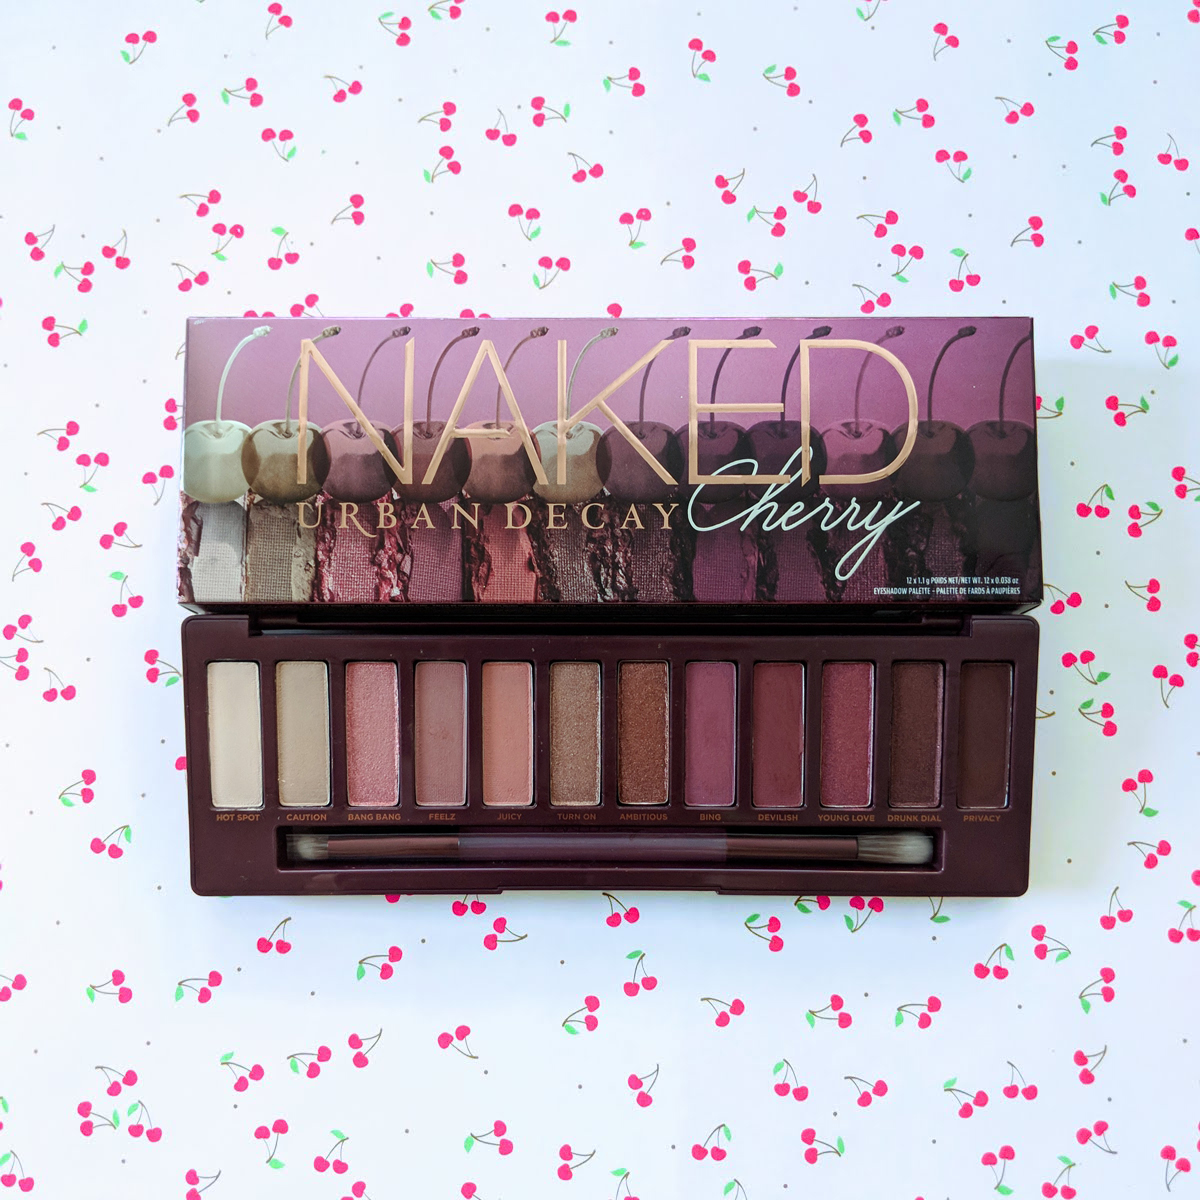 Urban Decay Naked Cherry Eyeshadow Palette Swatches Review